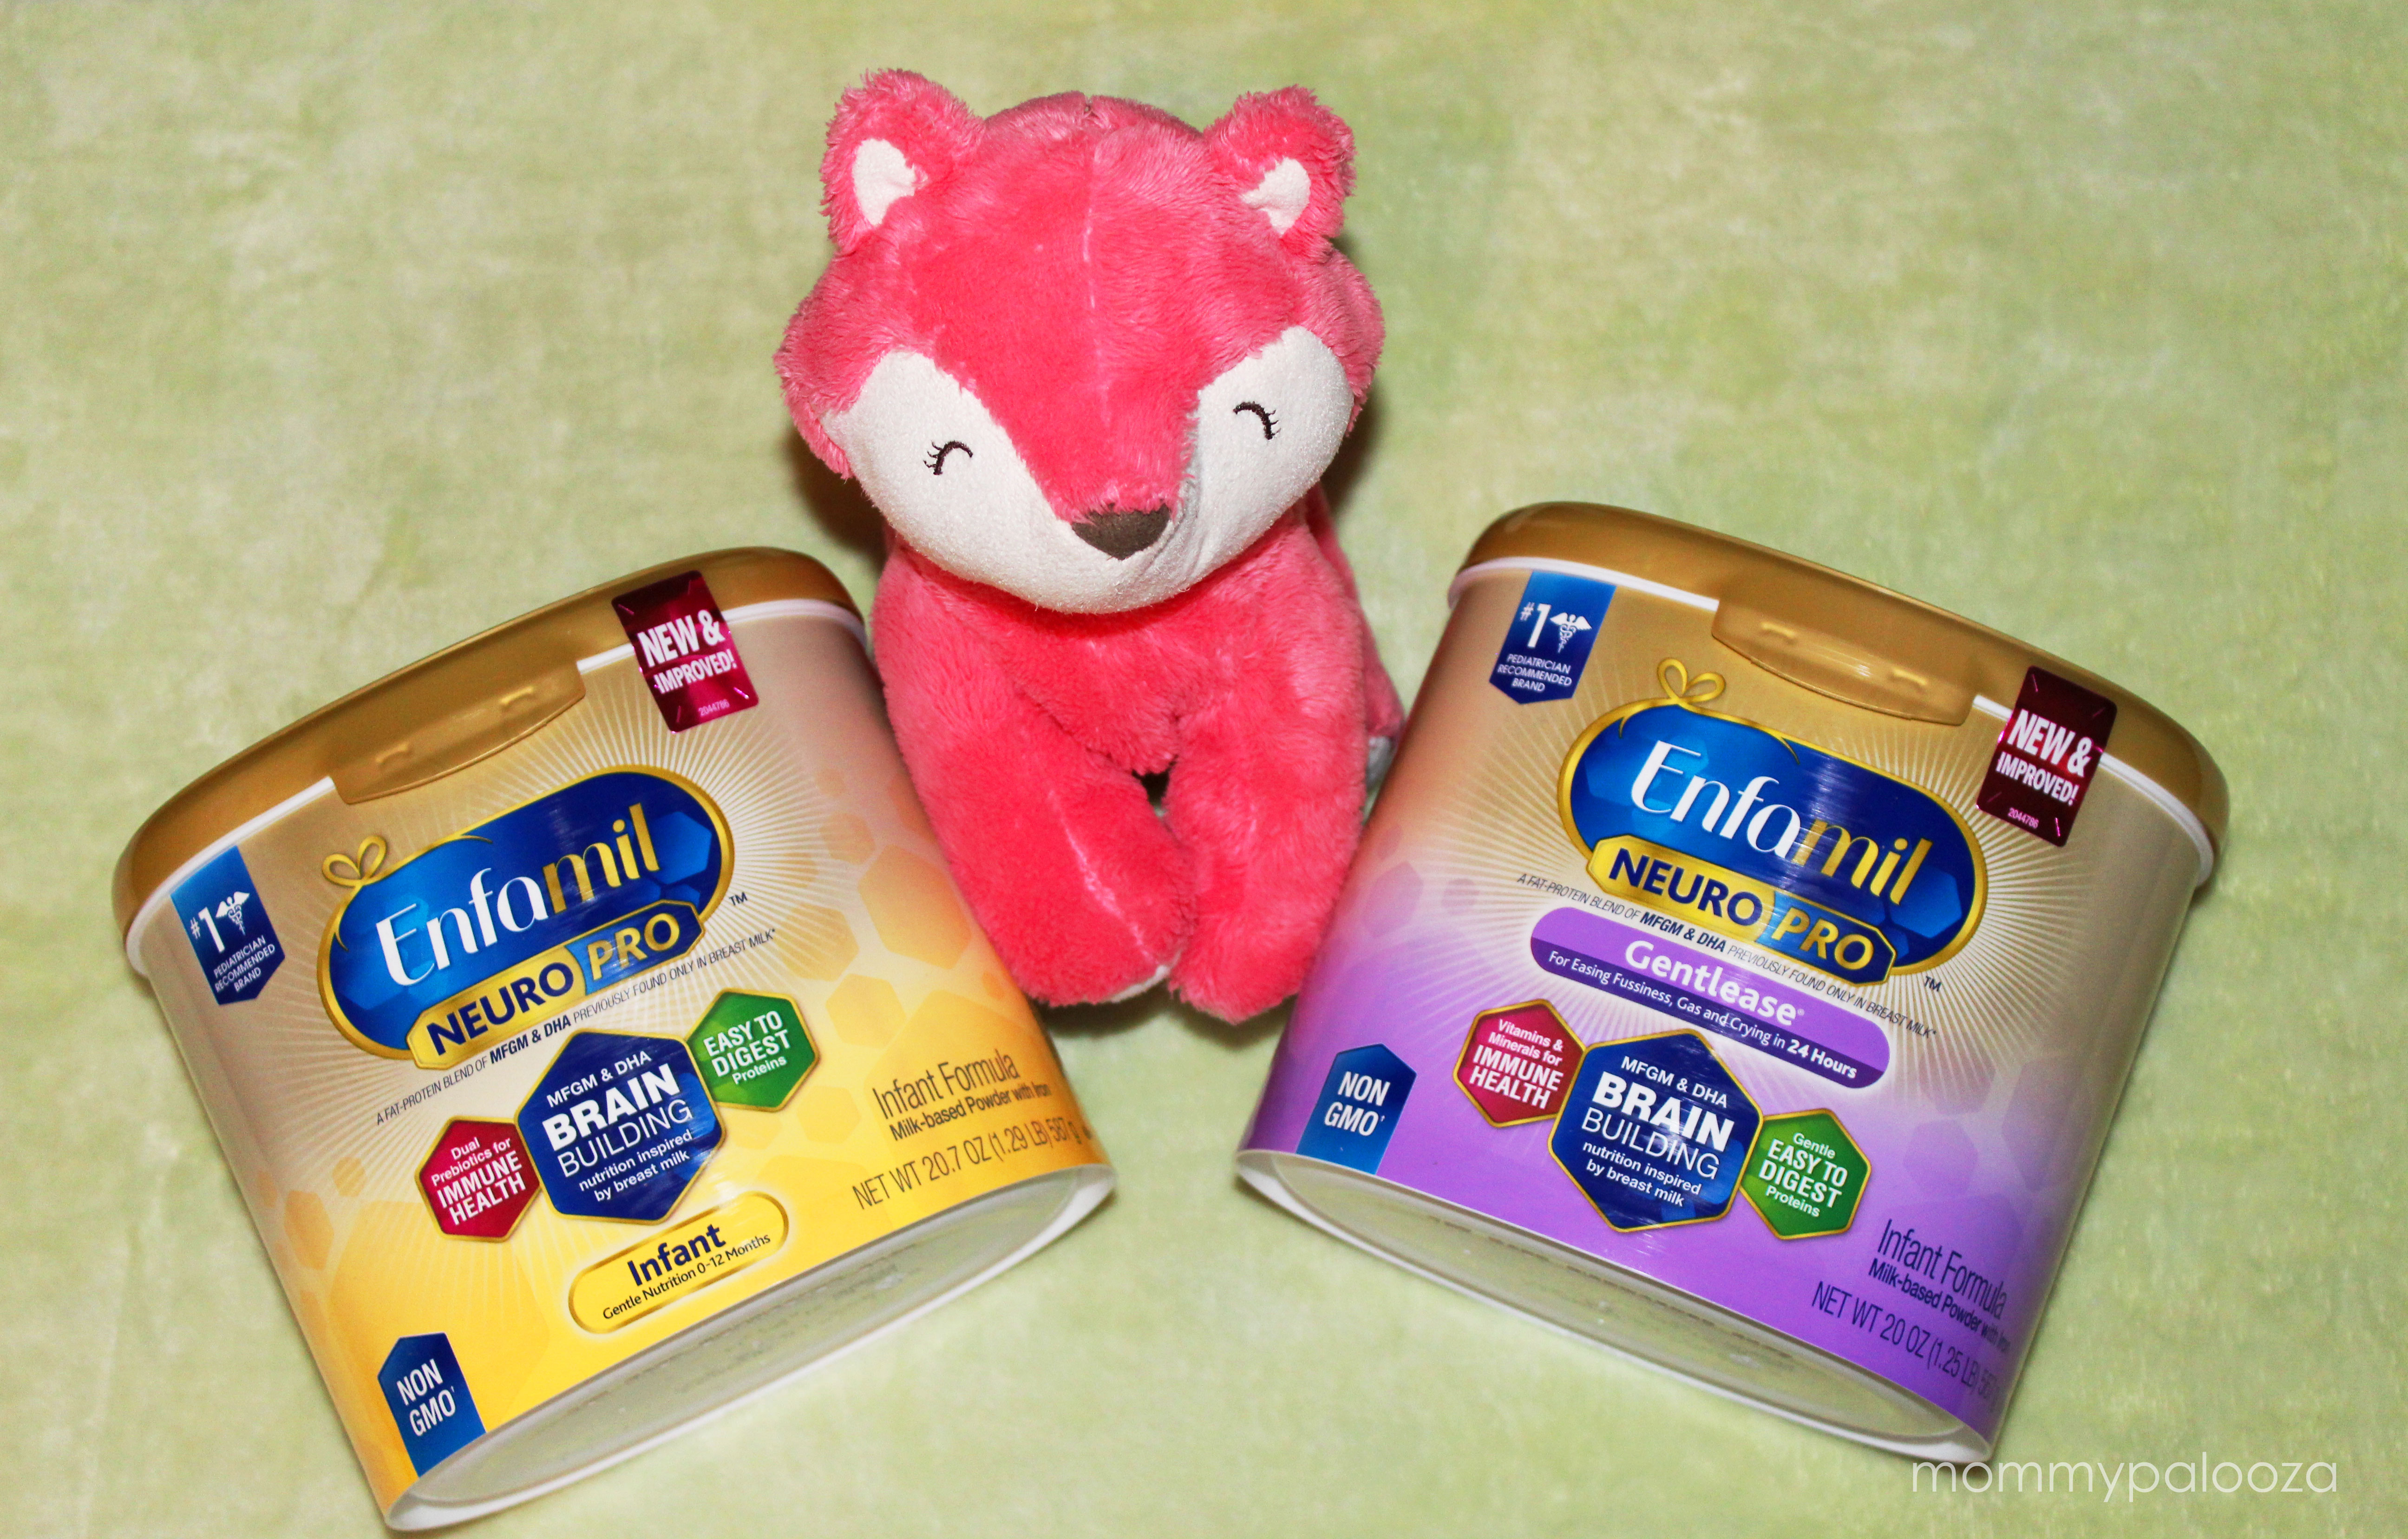 two containers of Enfamil NeuroPro next to pink stuffed fox animal toy